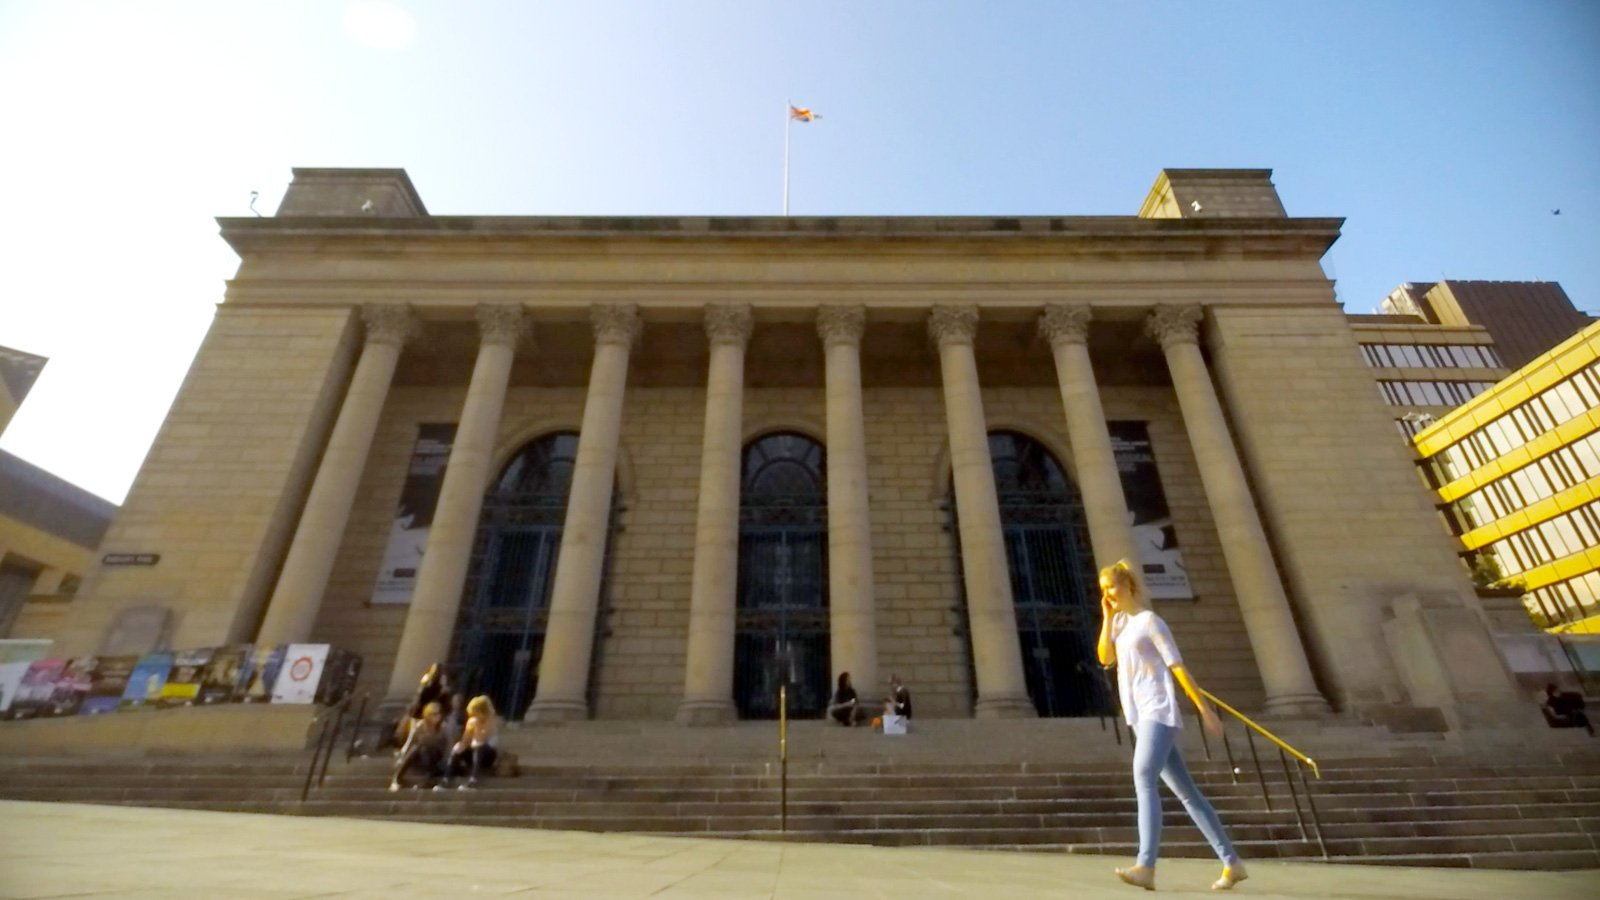 Sheffield City Hall in Barkers Pool